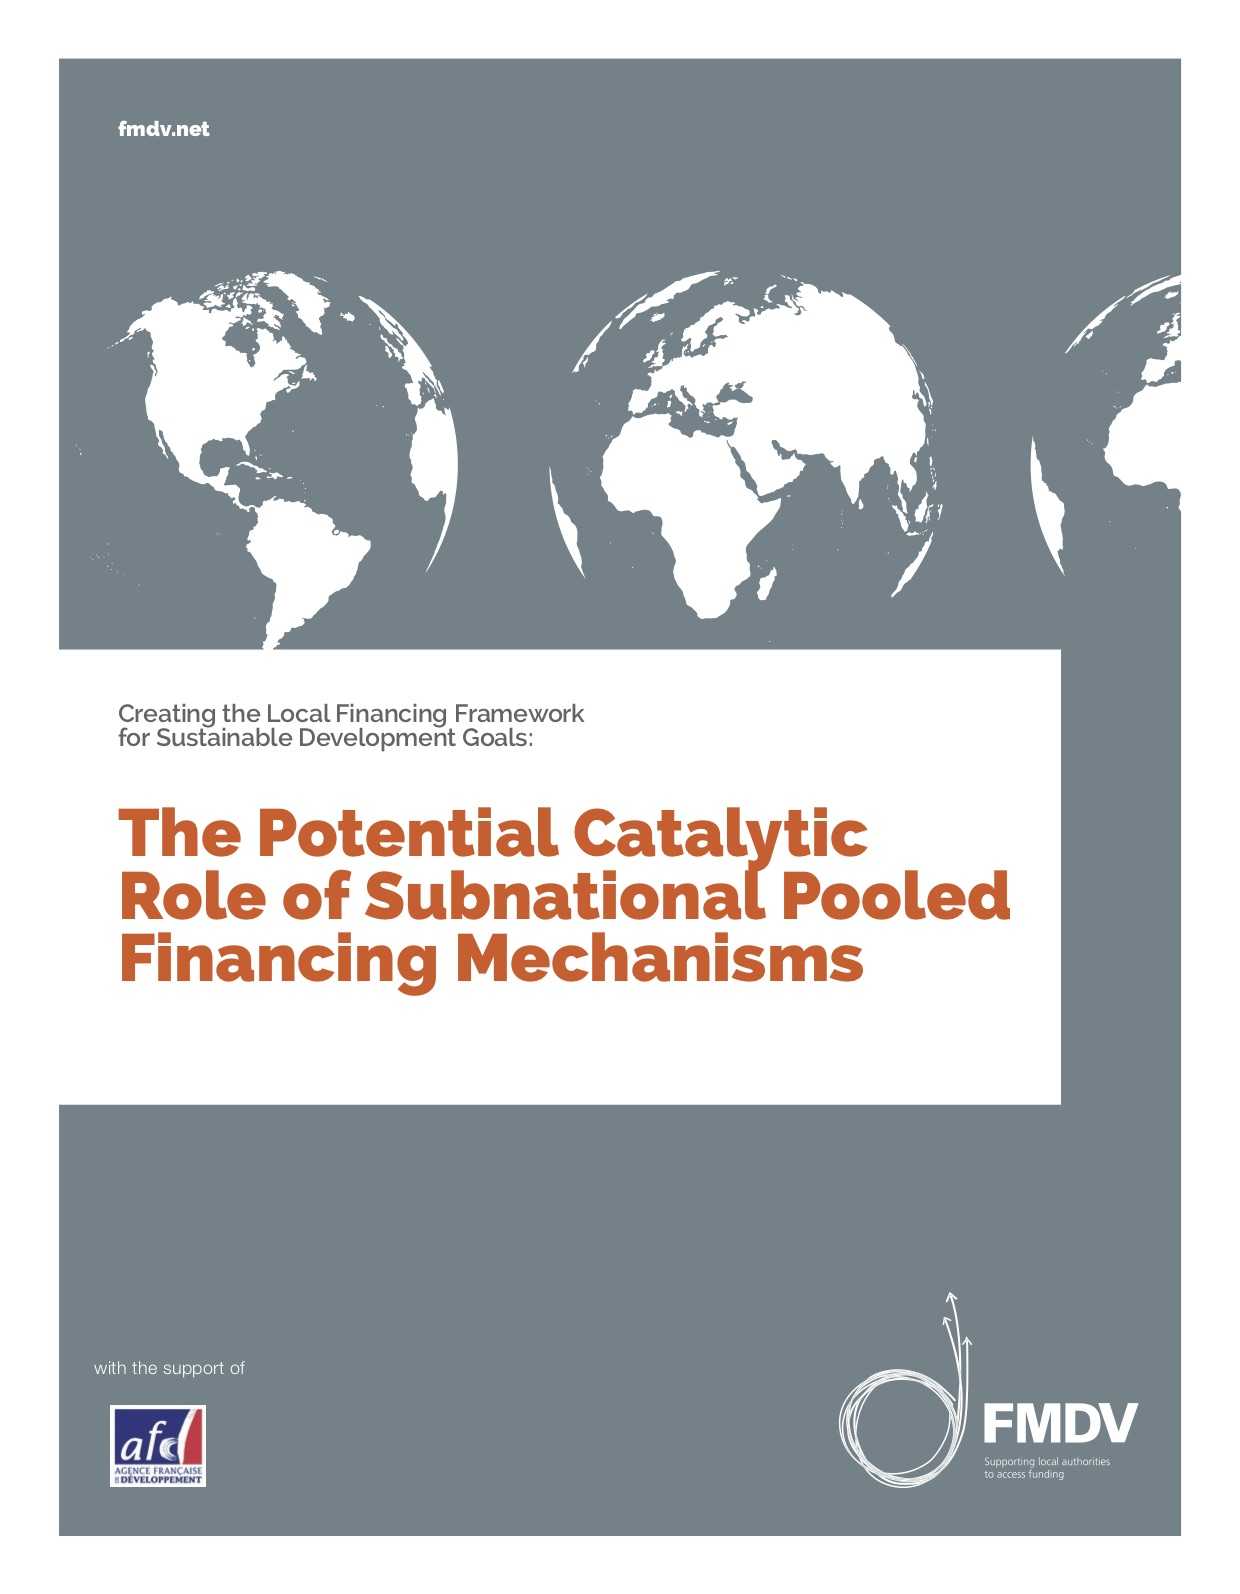 Creating the Local Financing Framework for Sustainable Development Goals: The Potential Catalytic Role of Subnational Pooled Financing Mechanisms